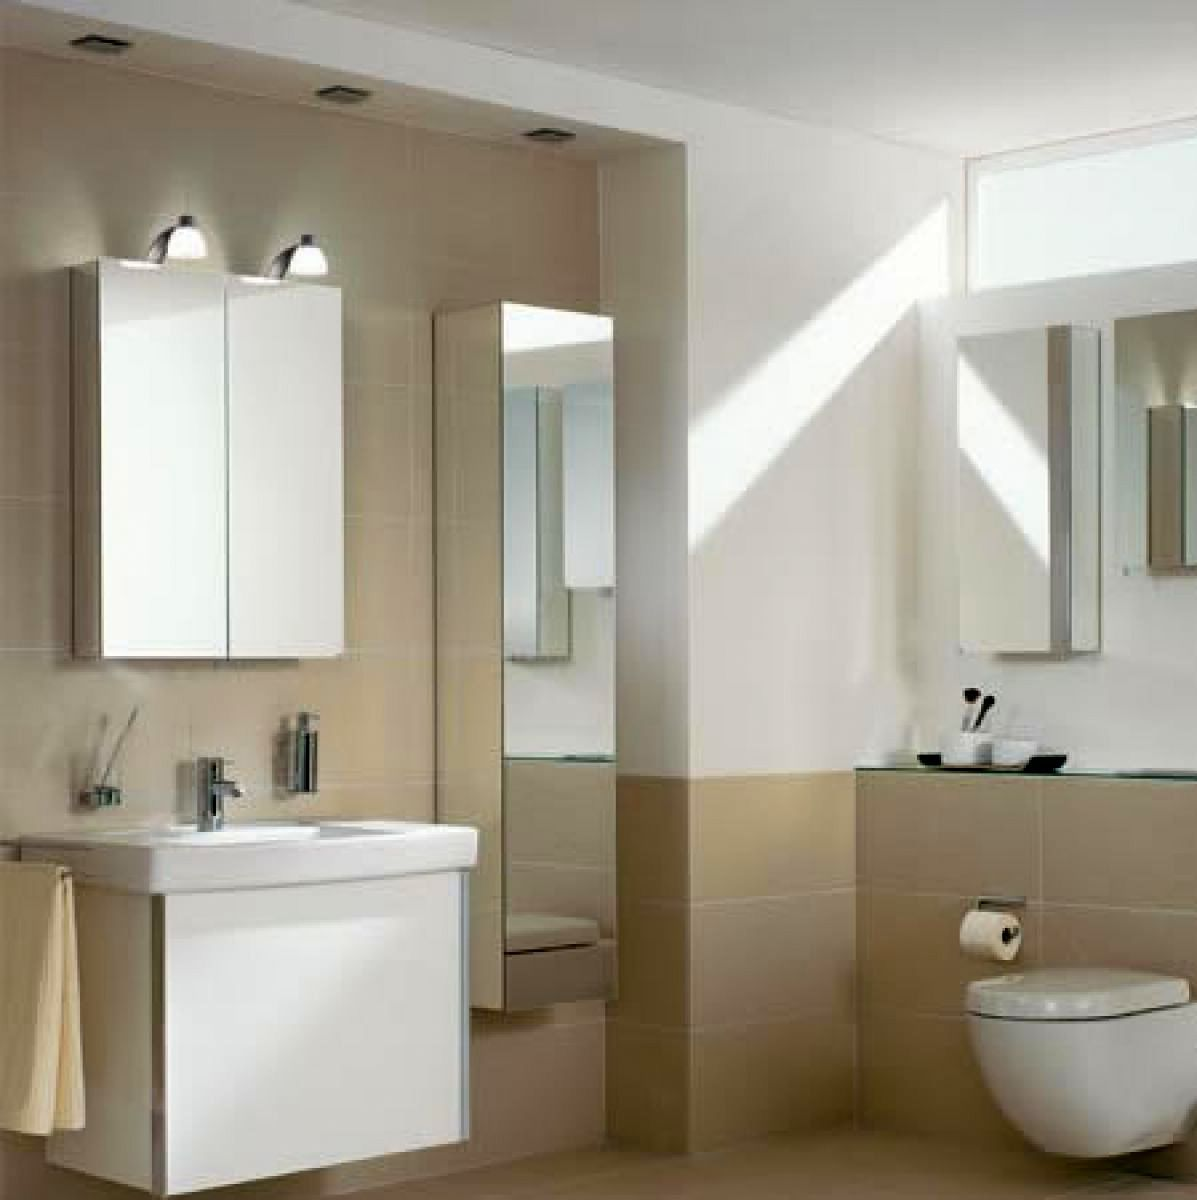 Tall Bathroom Mirrors Keuco Royal 30 Tall Mirror Cabinet Uk Bathrooms